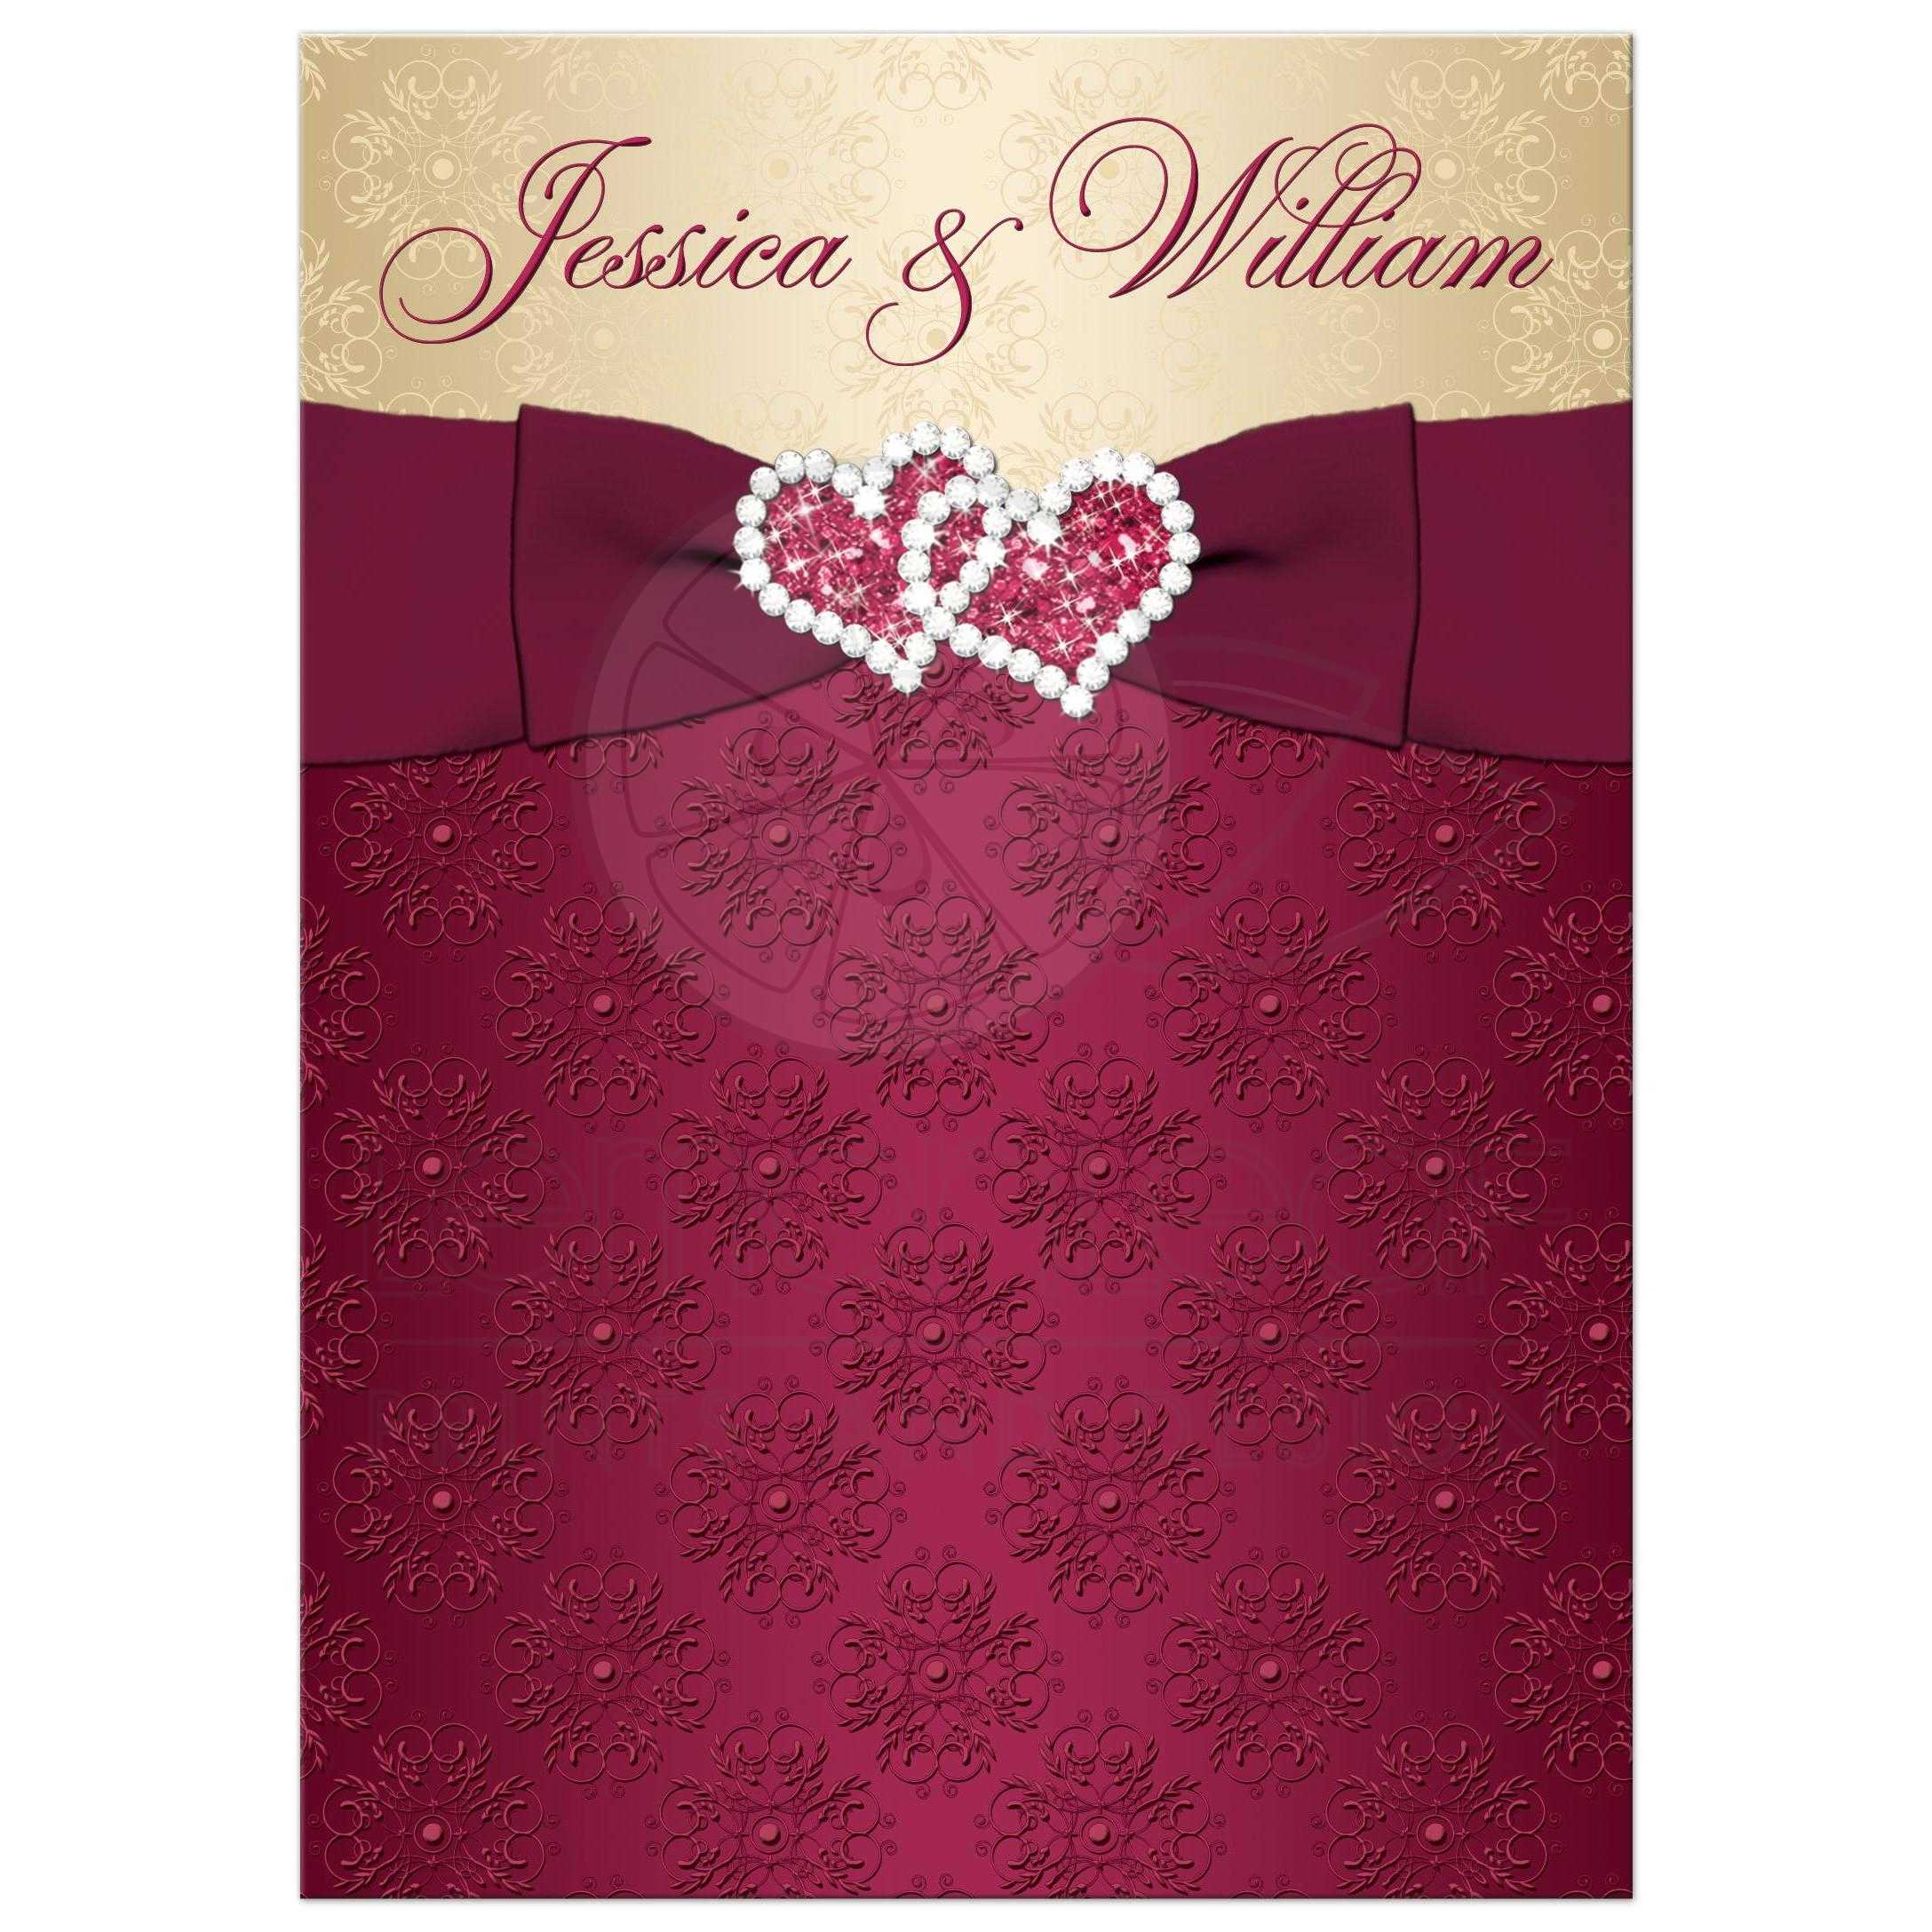 Great Burgundy And Gold Damask Scrolls Wedding Invitations With Ribbon Bow Jeweled Joined